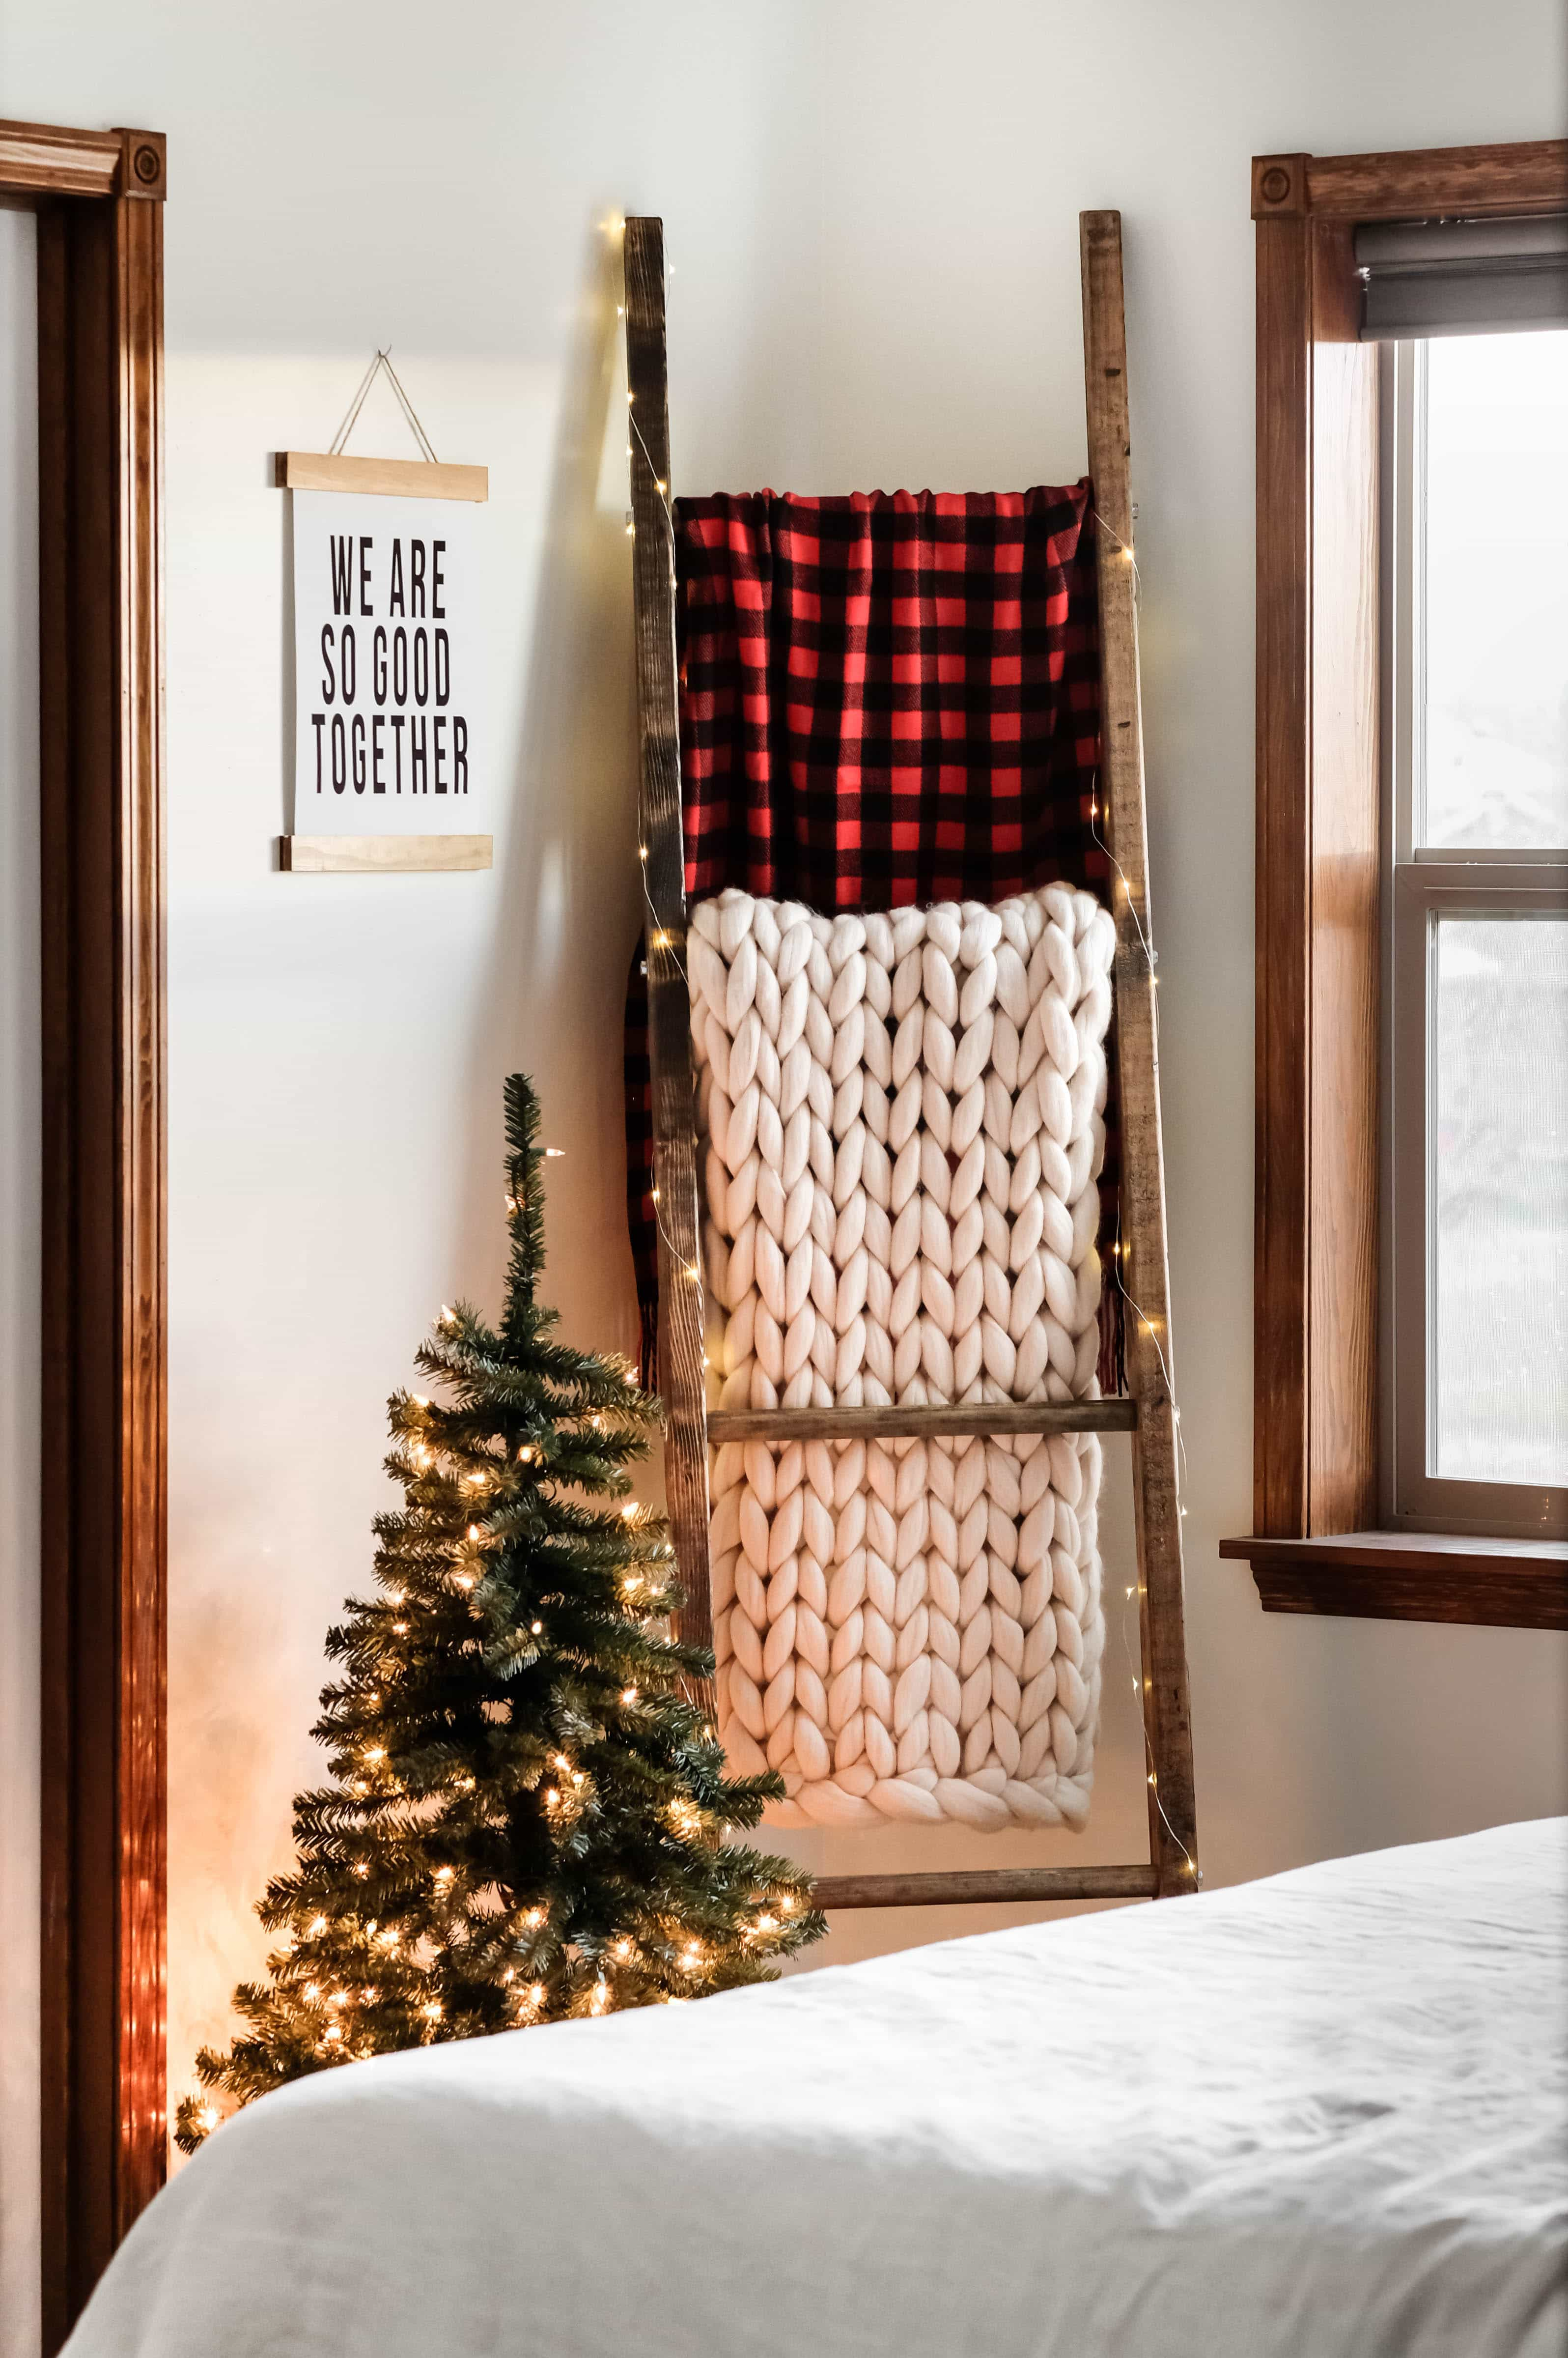 A blanket ladder with holding a white woven blanket, and a red buffalo check blanket